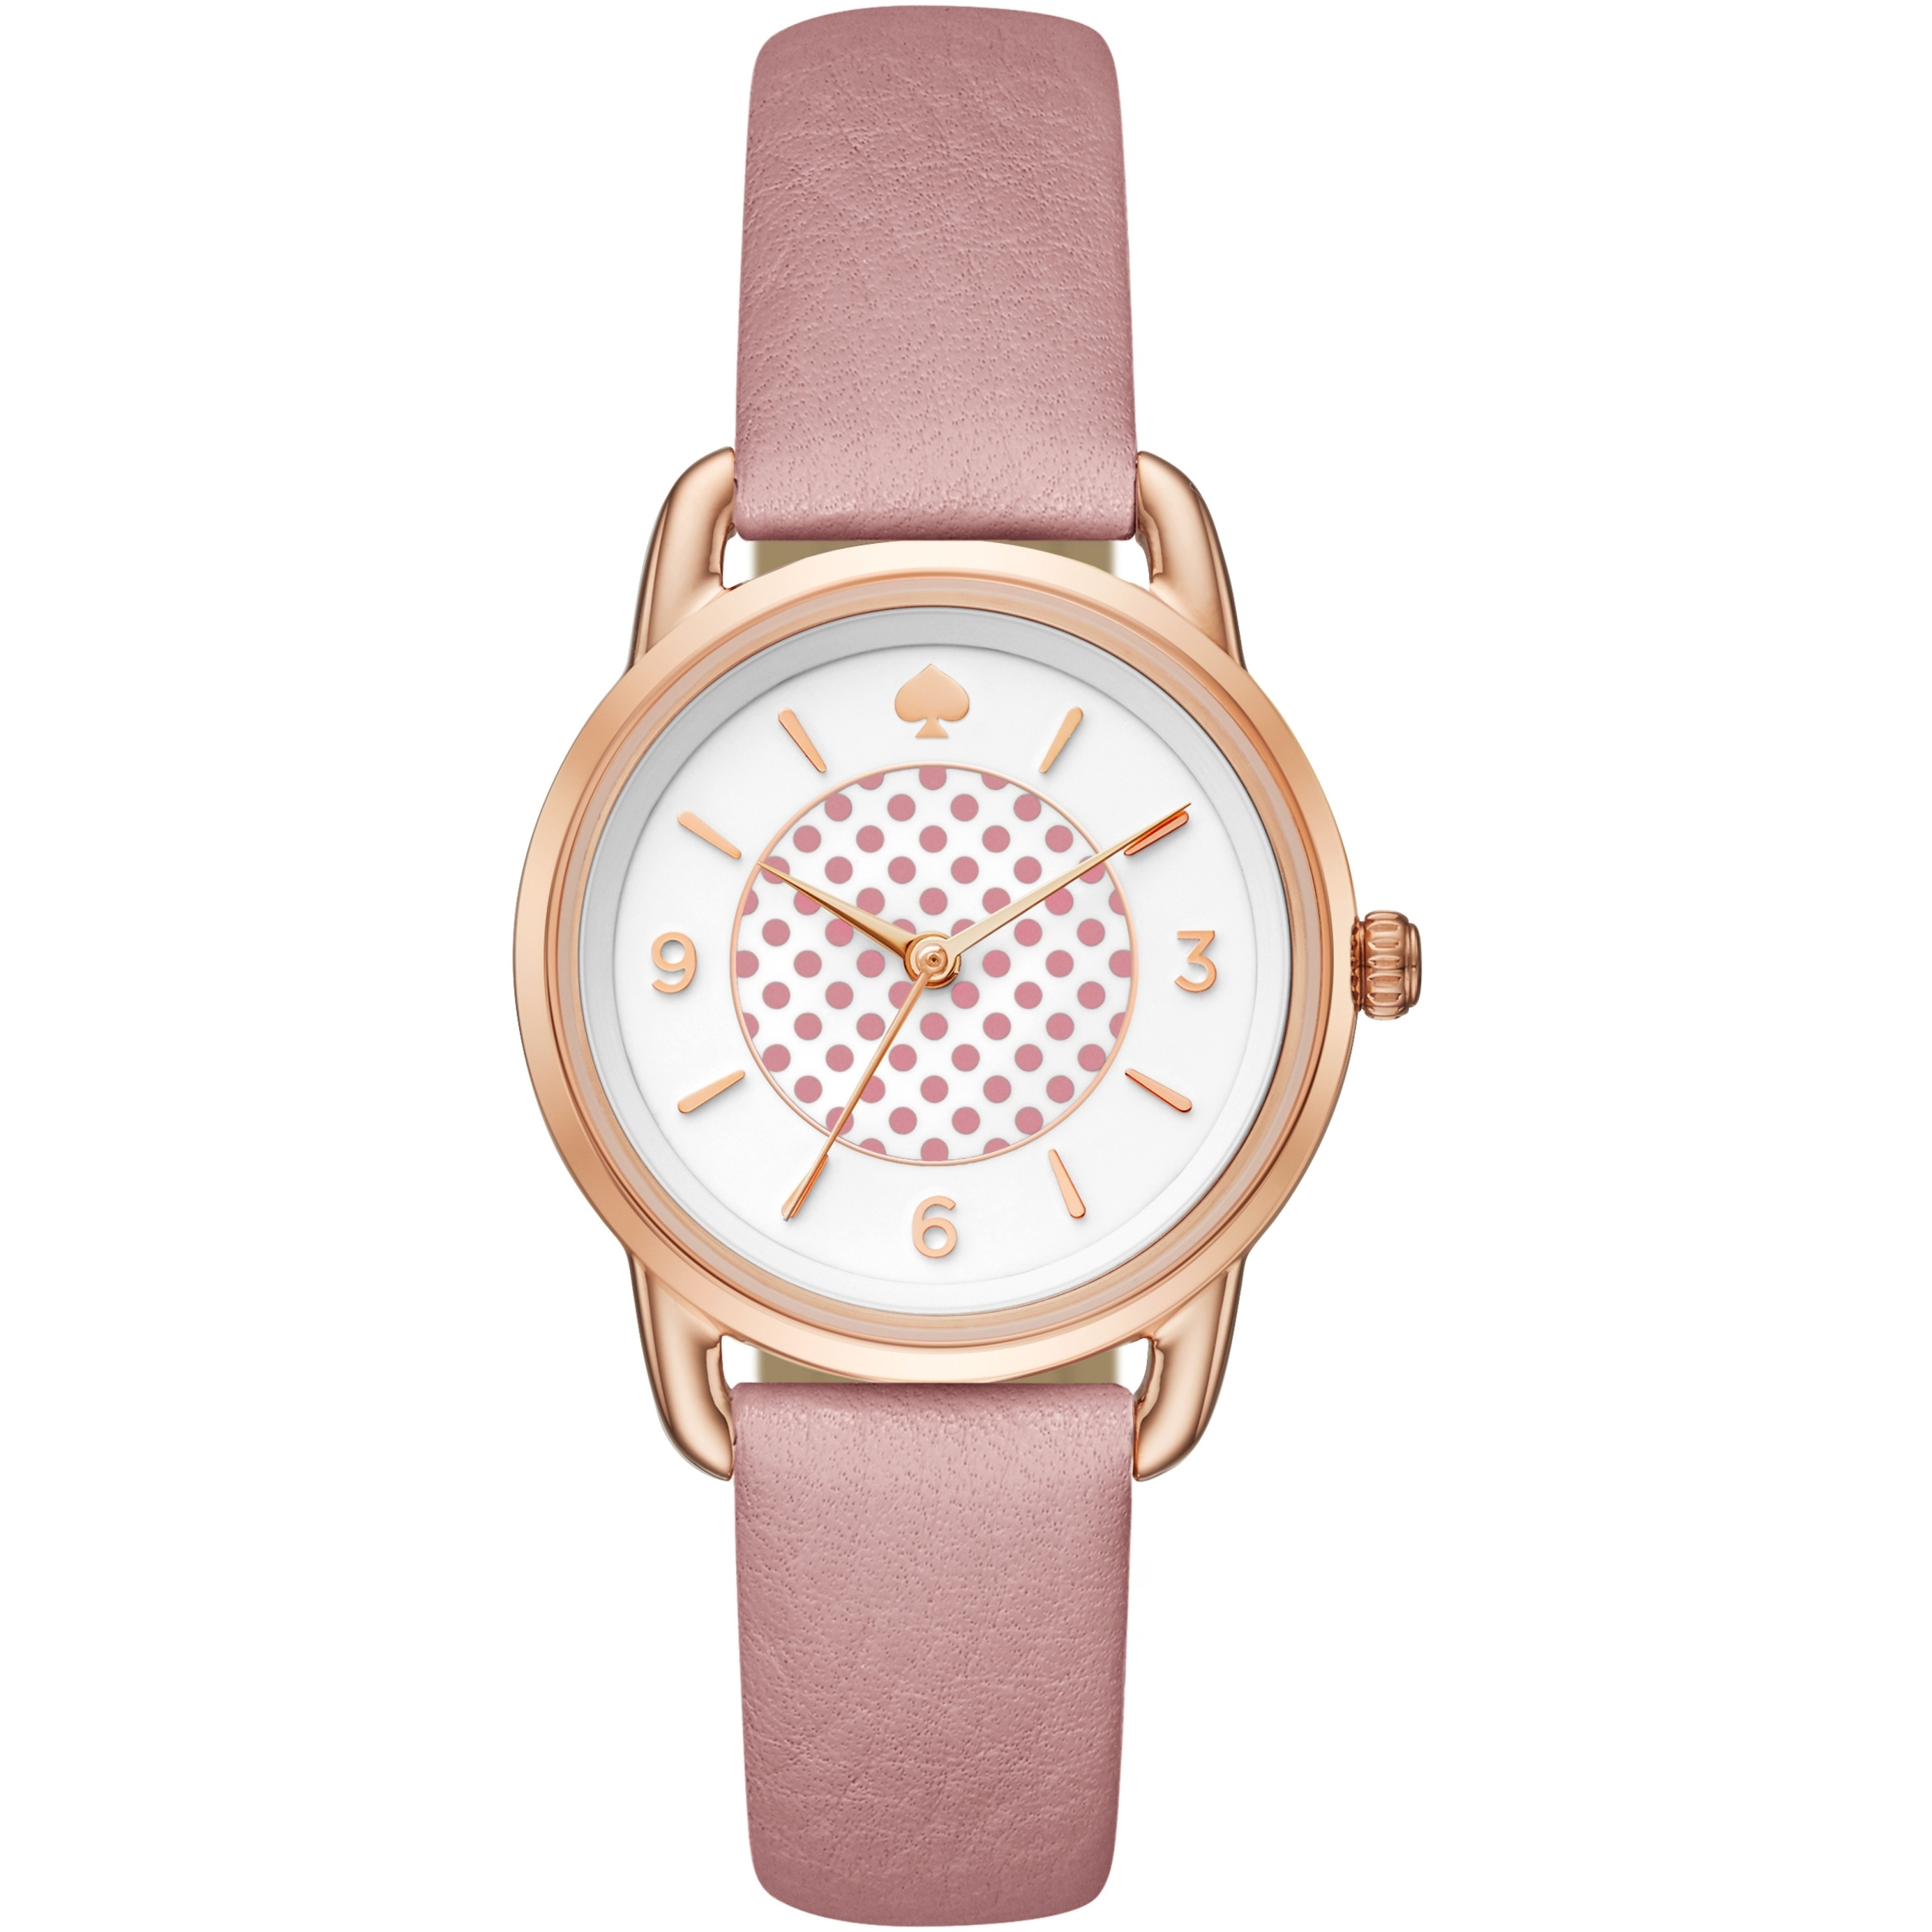 from lewis watch i peach s rose burton at b women john pin our pinterest gold daisy strap g olivia flower white n range nude leather buy l watches show moulded